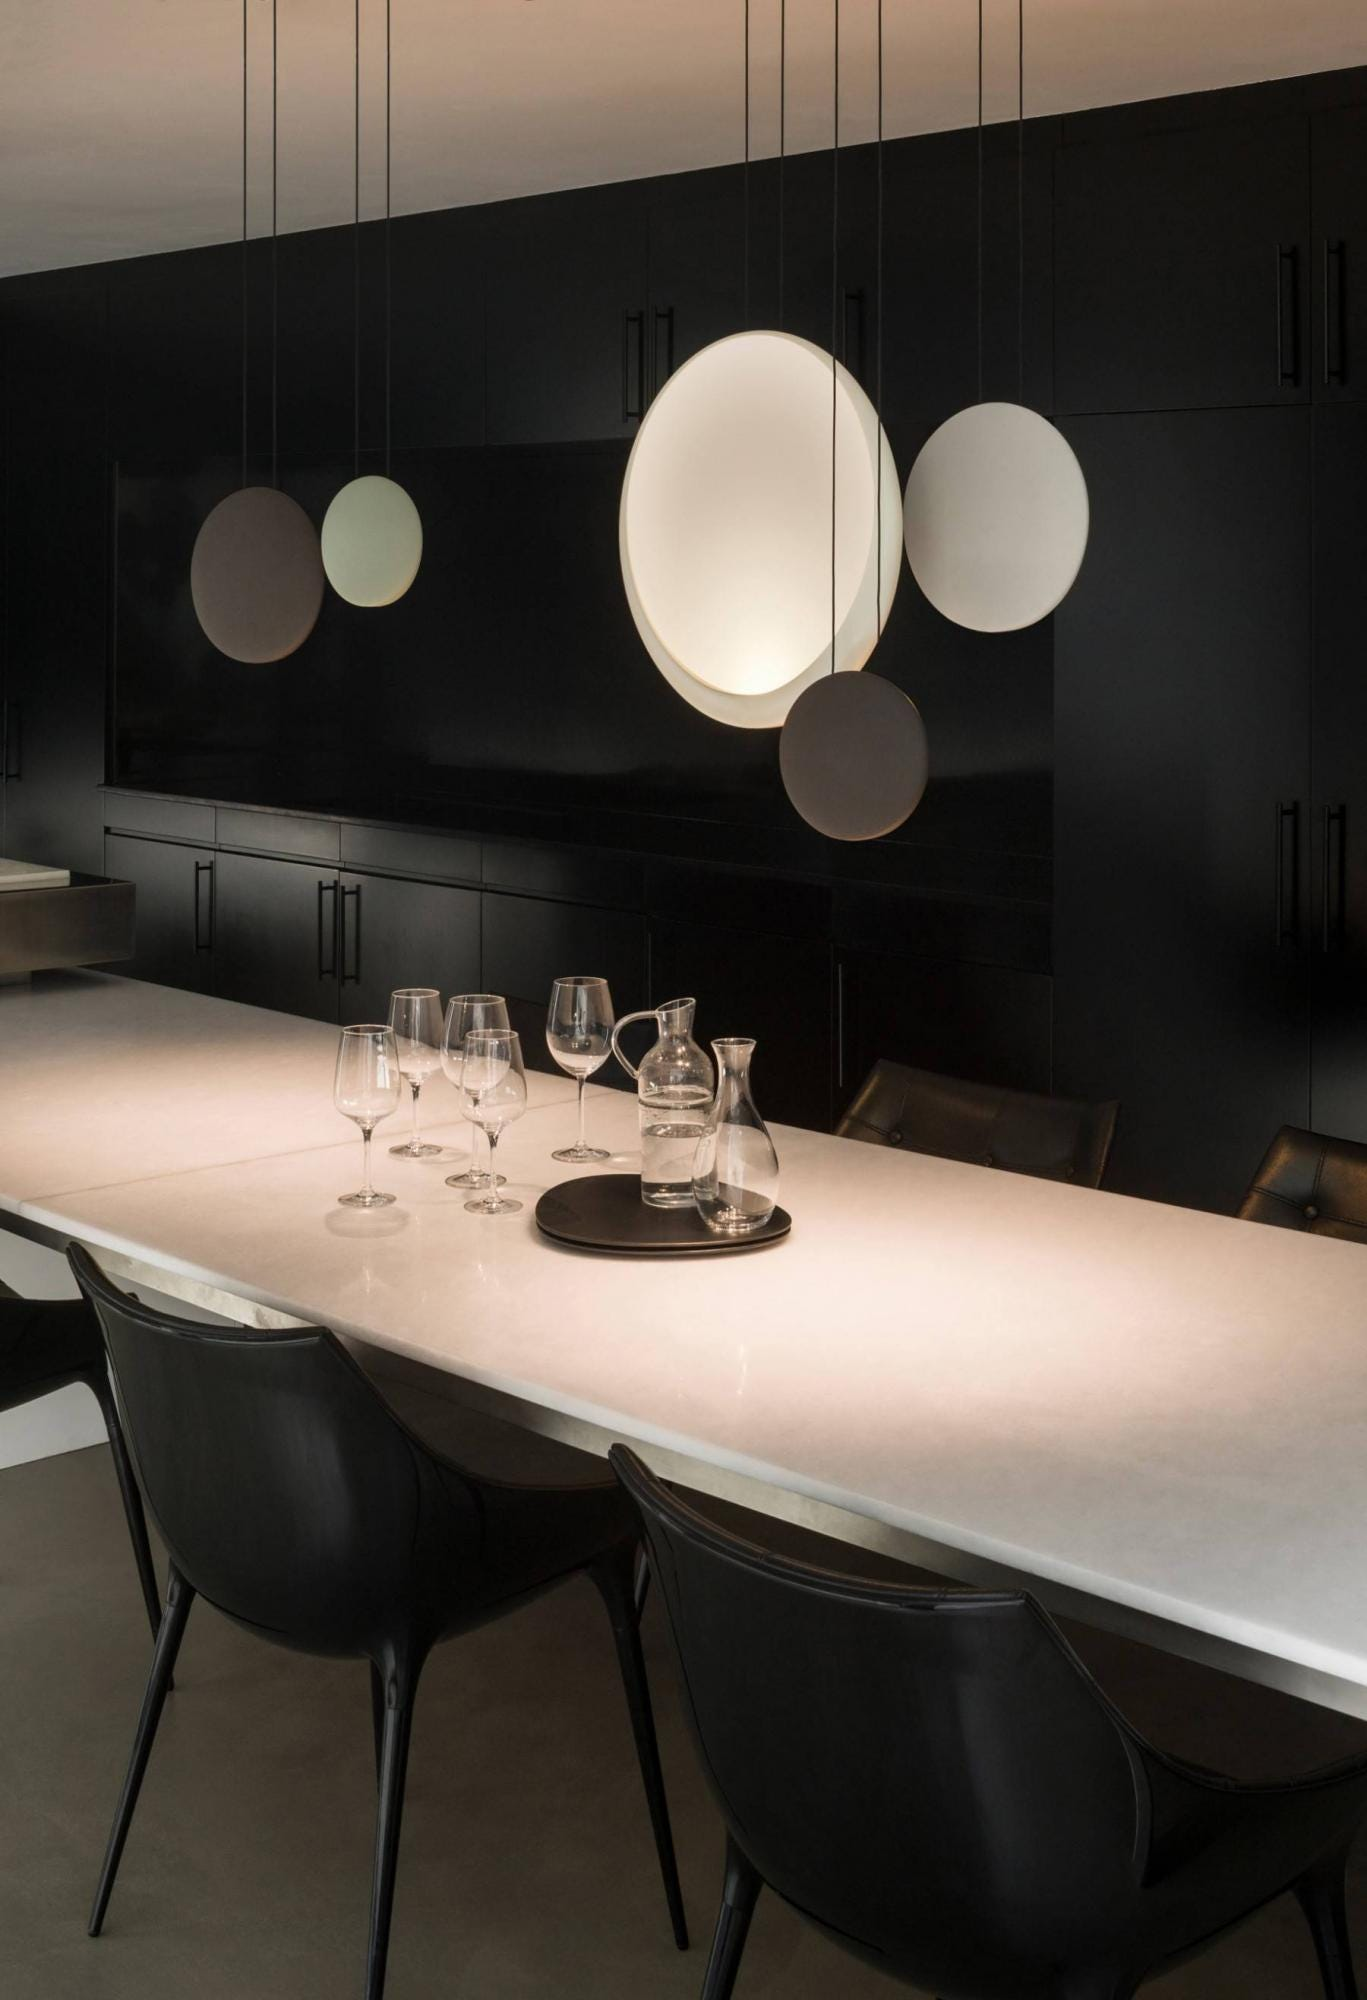 Vibia Cosmos Satellite Small LED Pendant Lamp